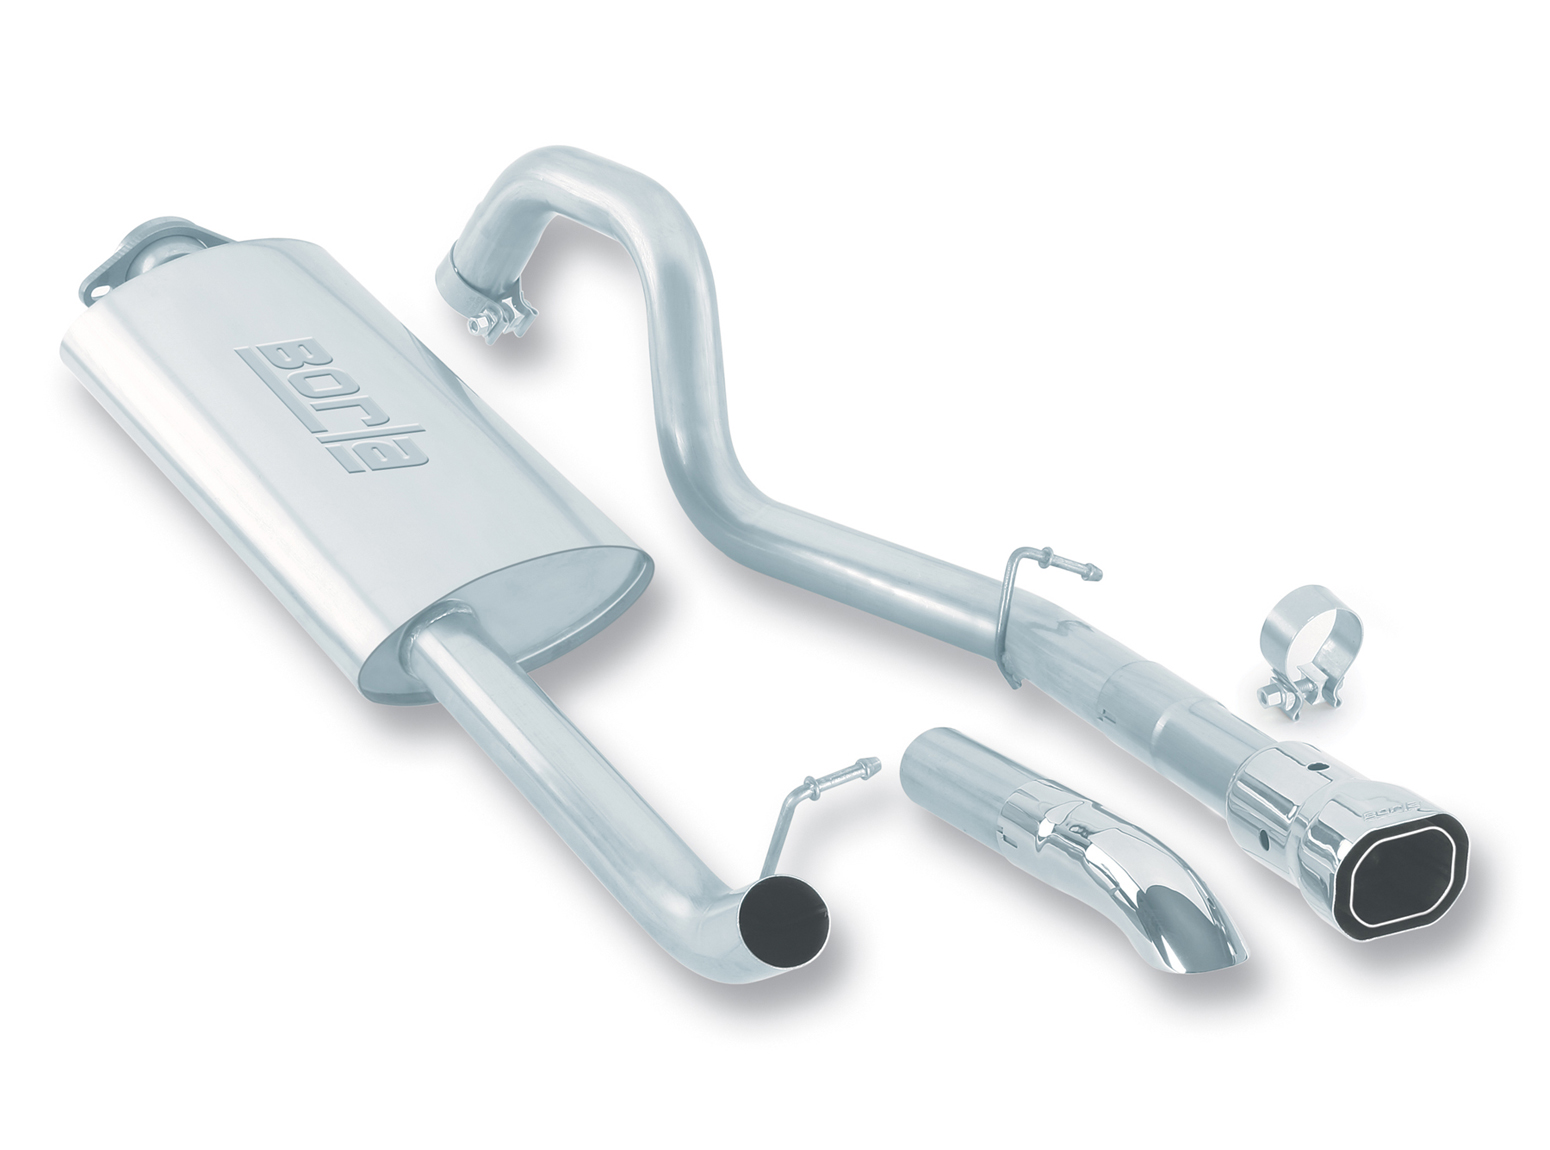 "Jeep Wrangler 4.0l 6cyl Unlimited 2004-2006 Borla 2.25"" Cat-Back Exhaust System - Single Square Angle-Cut Phantom Tips"